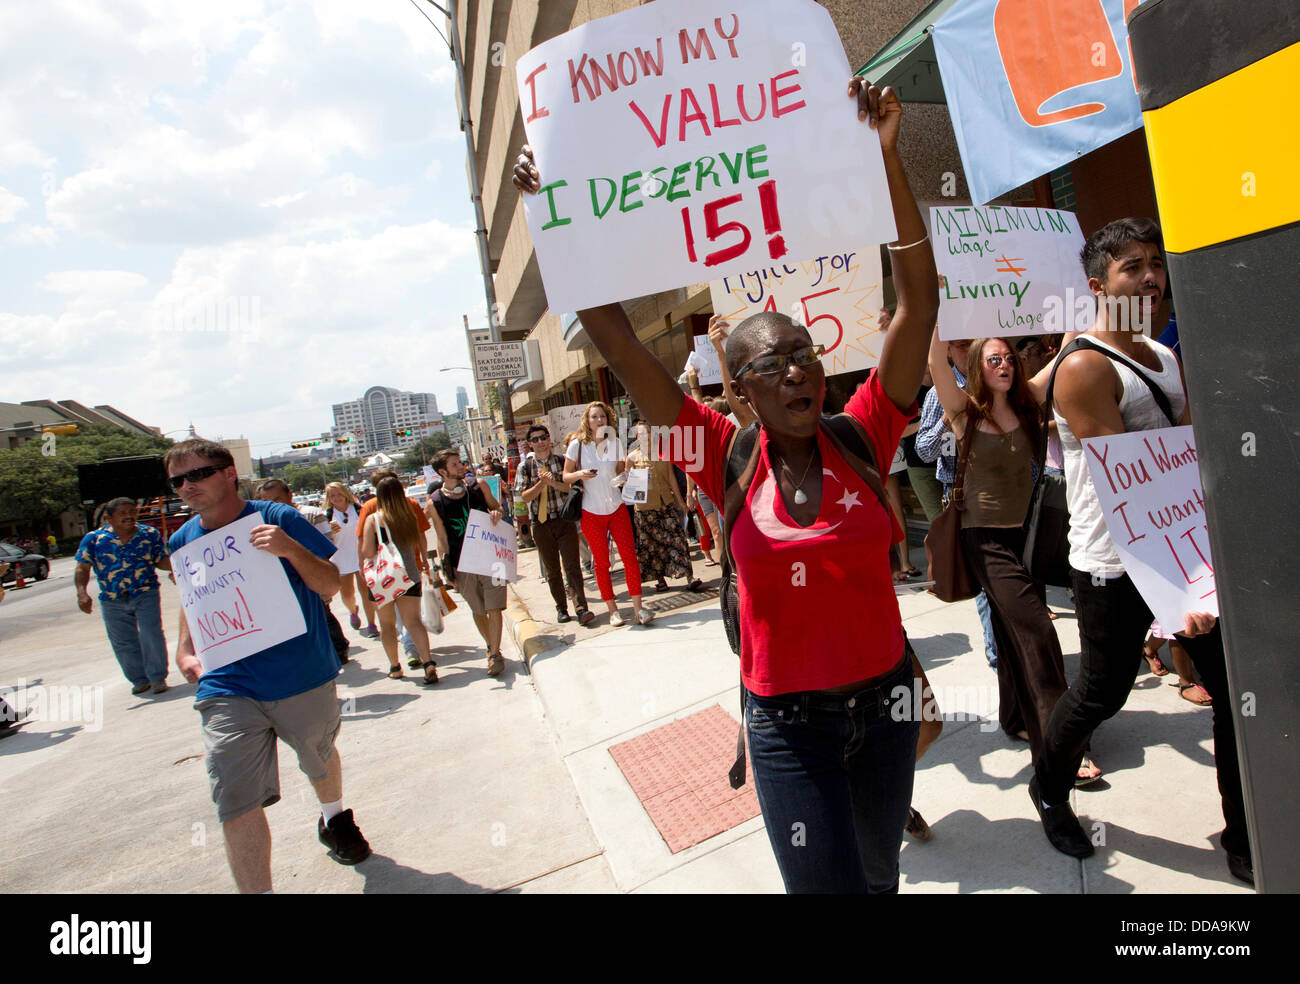 Austin, Texas USA: Fast-food workers and sympathizers march joining other U.S. cities protesting  low restaurant - Stock Image